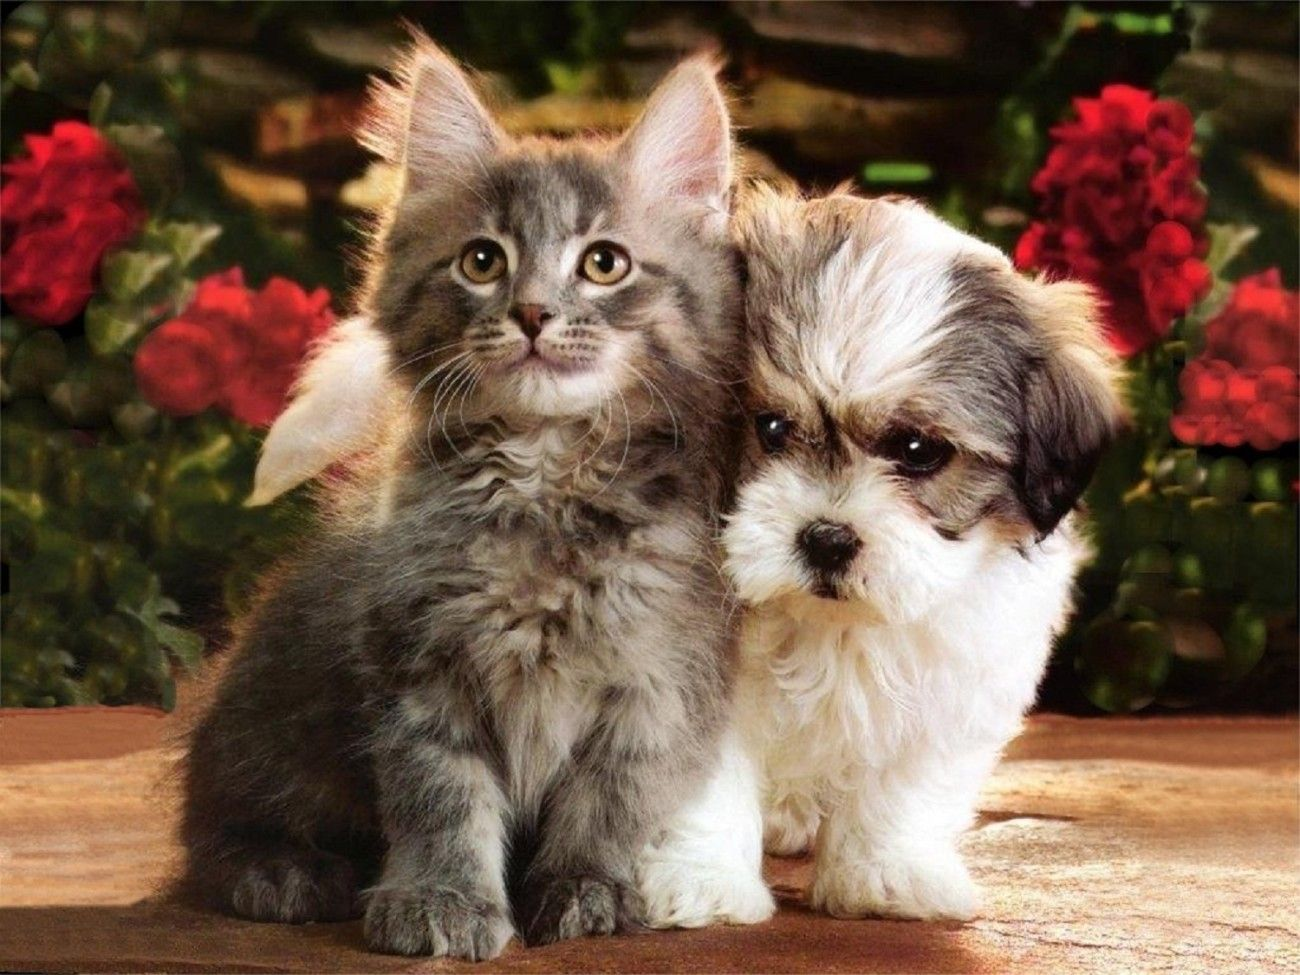 Puppies And Kitten Wallpaper Cute Puppies And Kittens Cute Cats And Dogs Kittens And Puppies